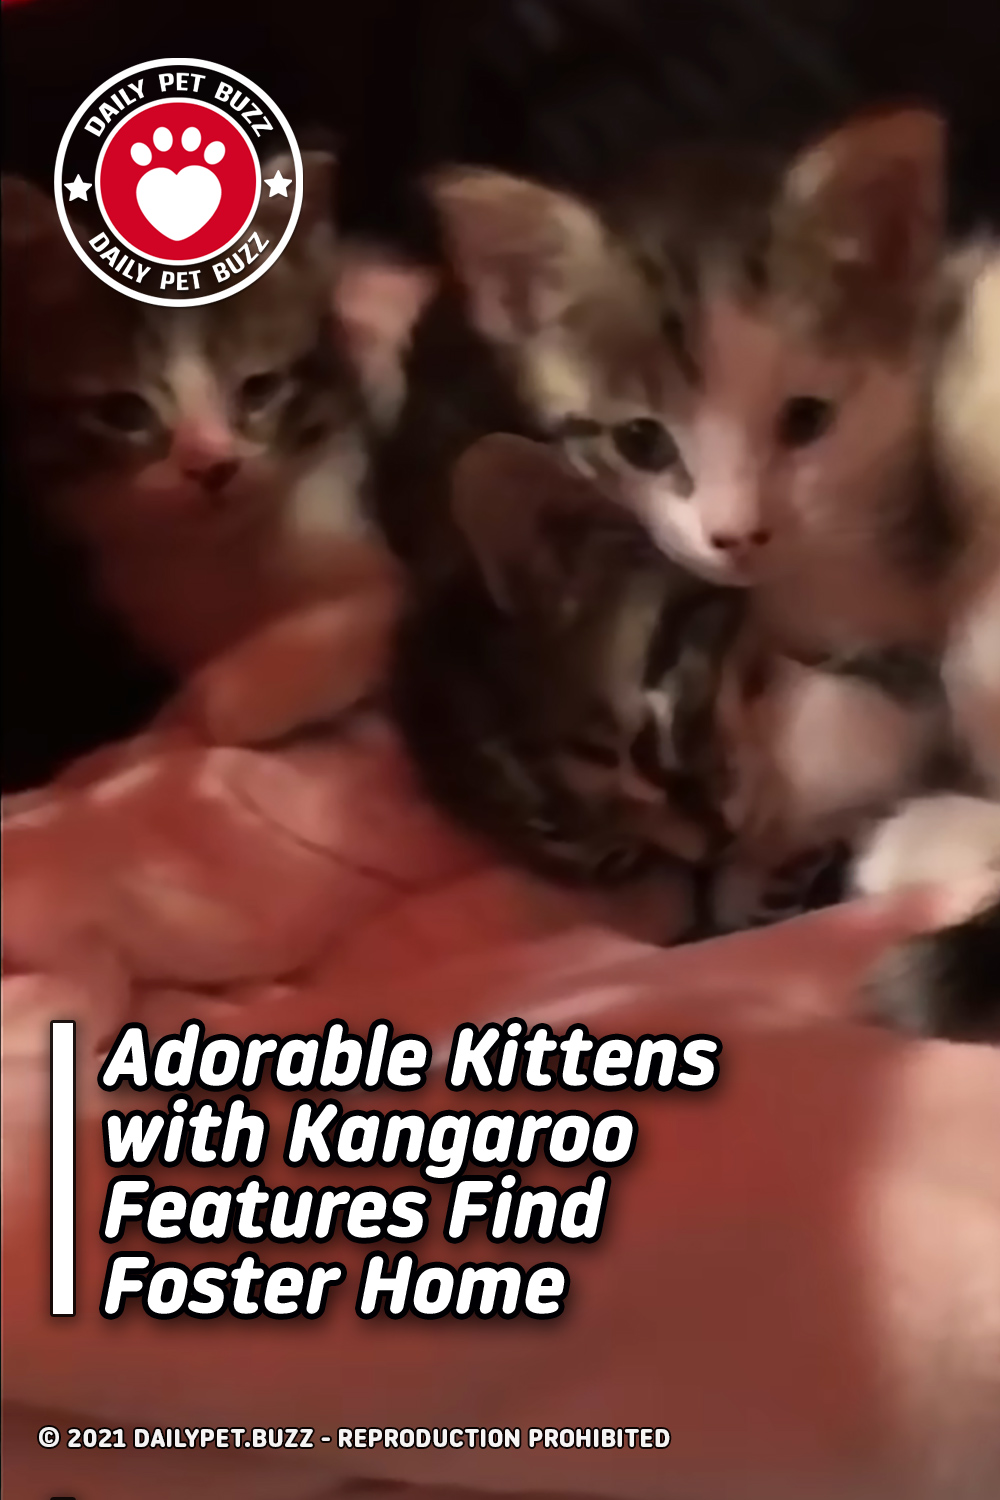 Adorable Kittens with Kangaroo Features Find Foster Home